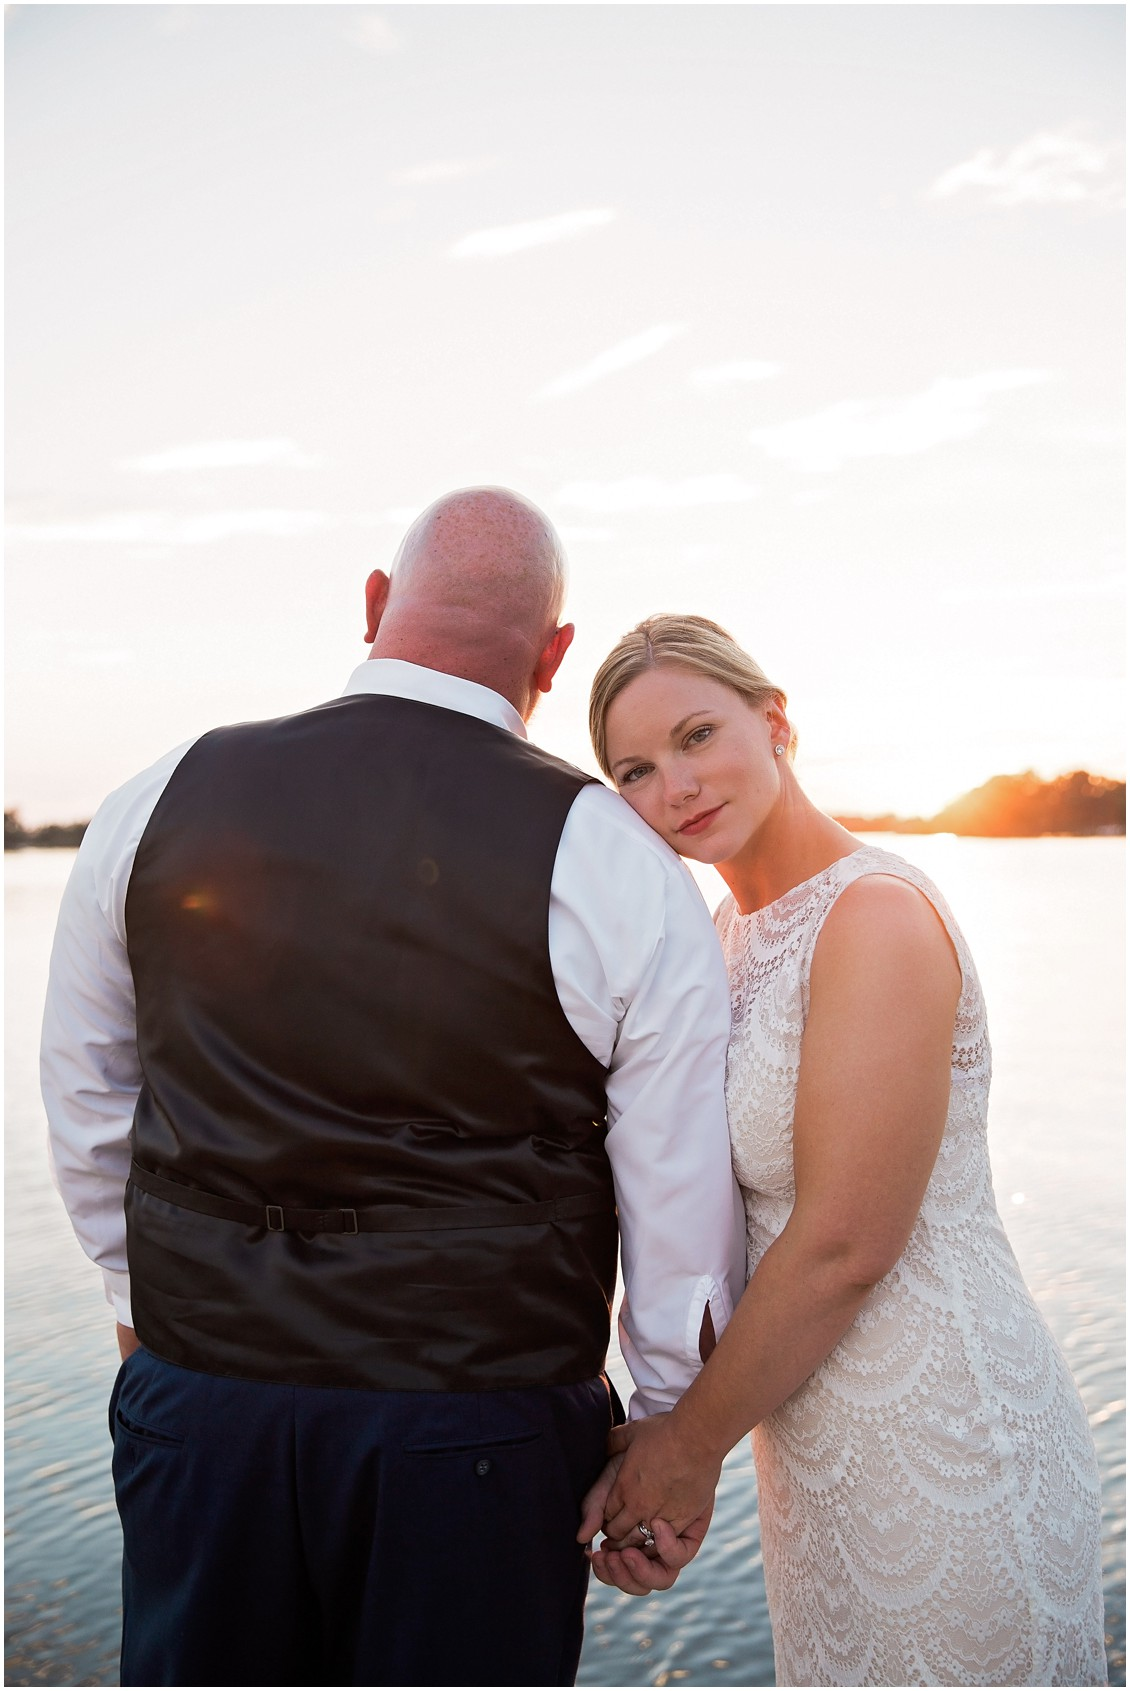 Bride and groom portraits perfect pair| My Eastern Shore Wedding | Chelsea Fluharty Photography